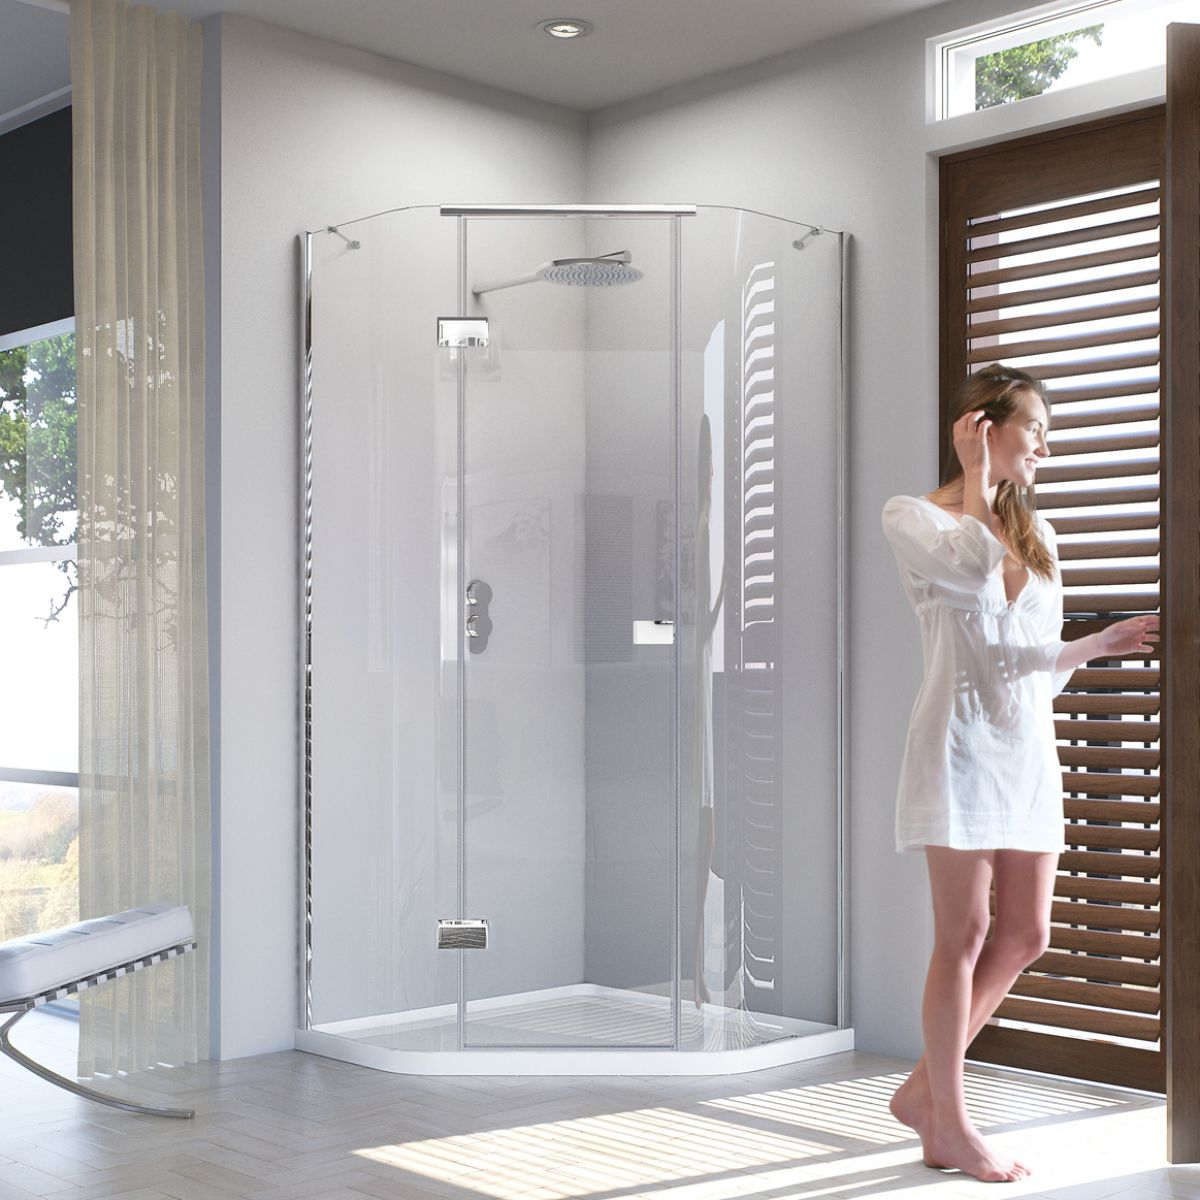 5 Best Shower Enclosure Kits For Bathrooms June 2018